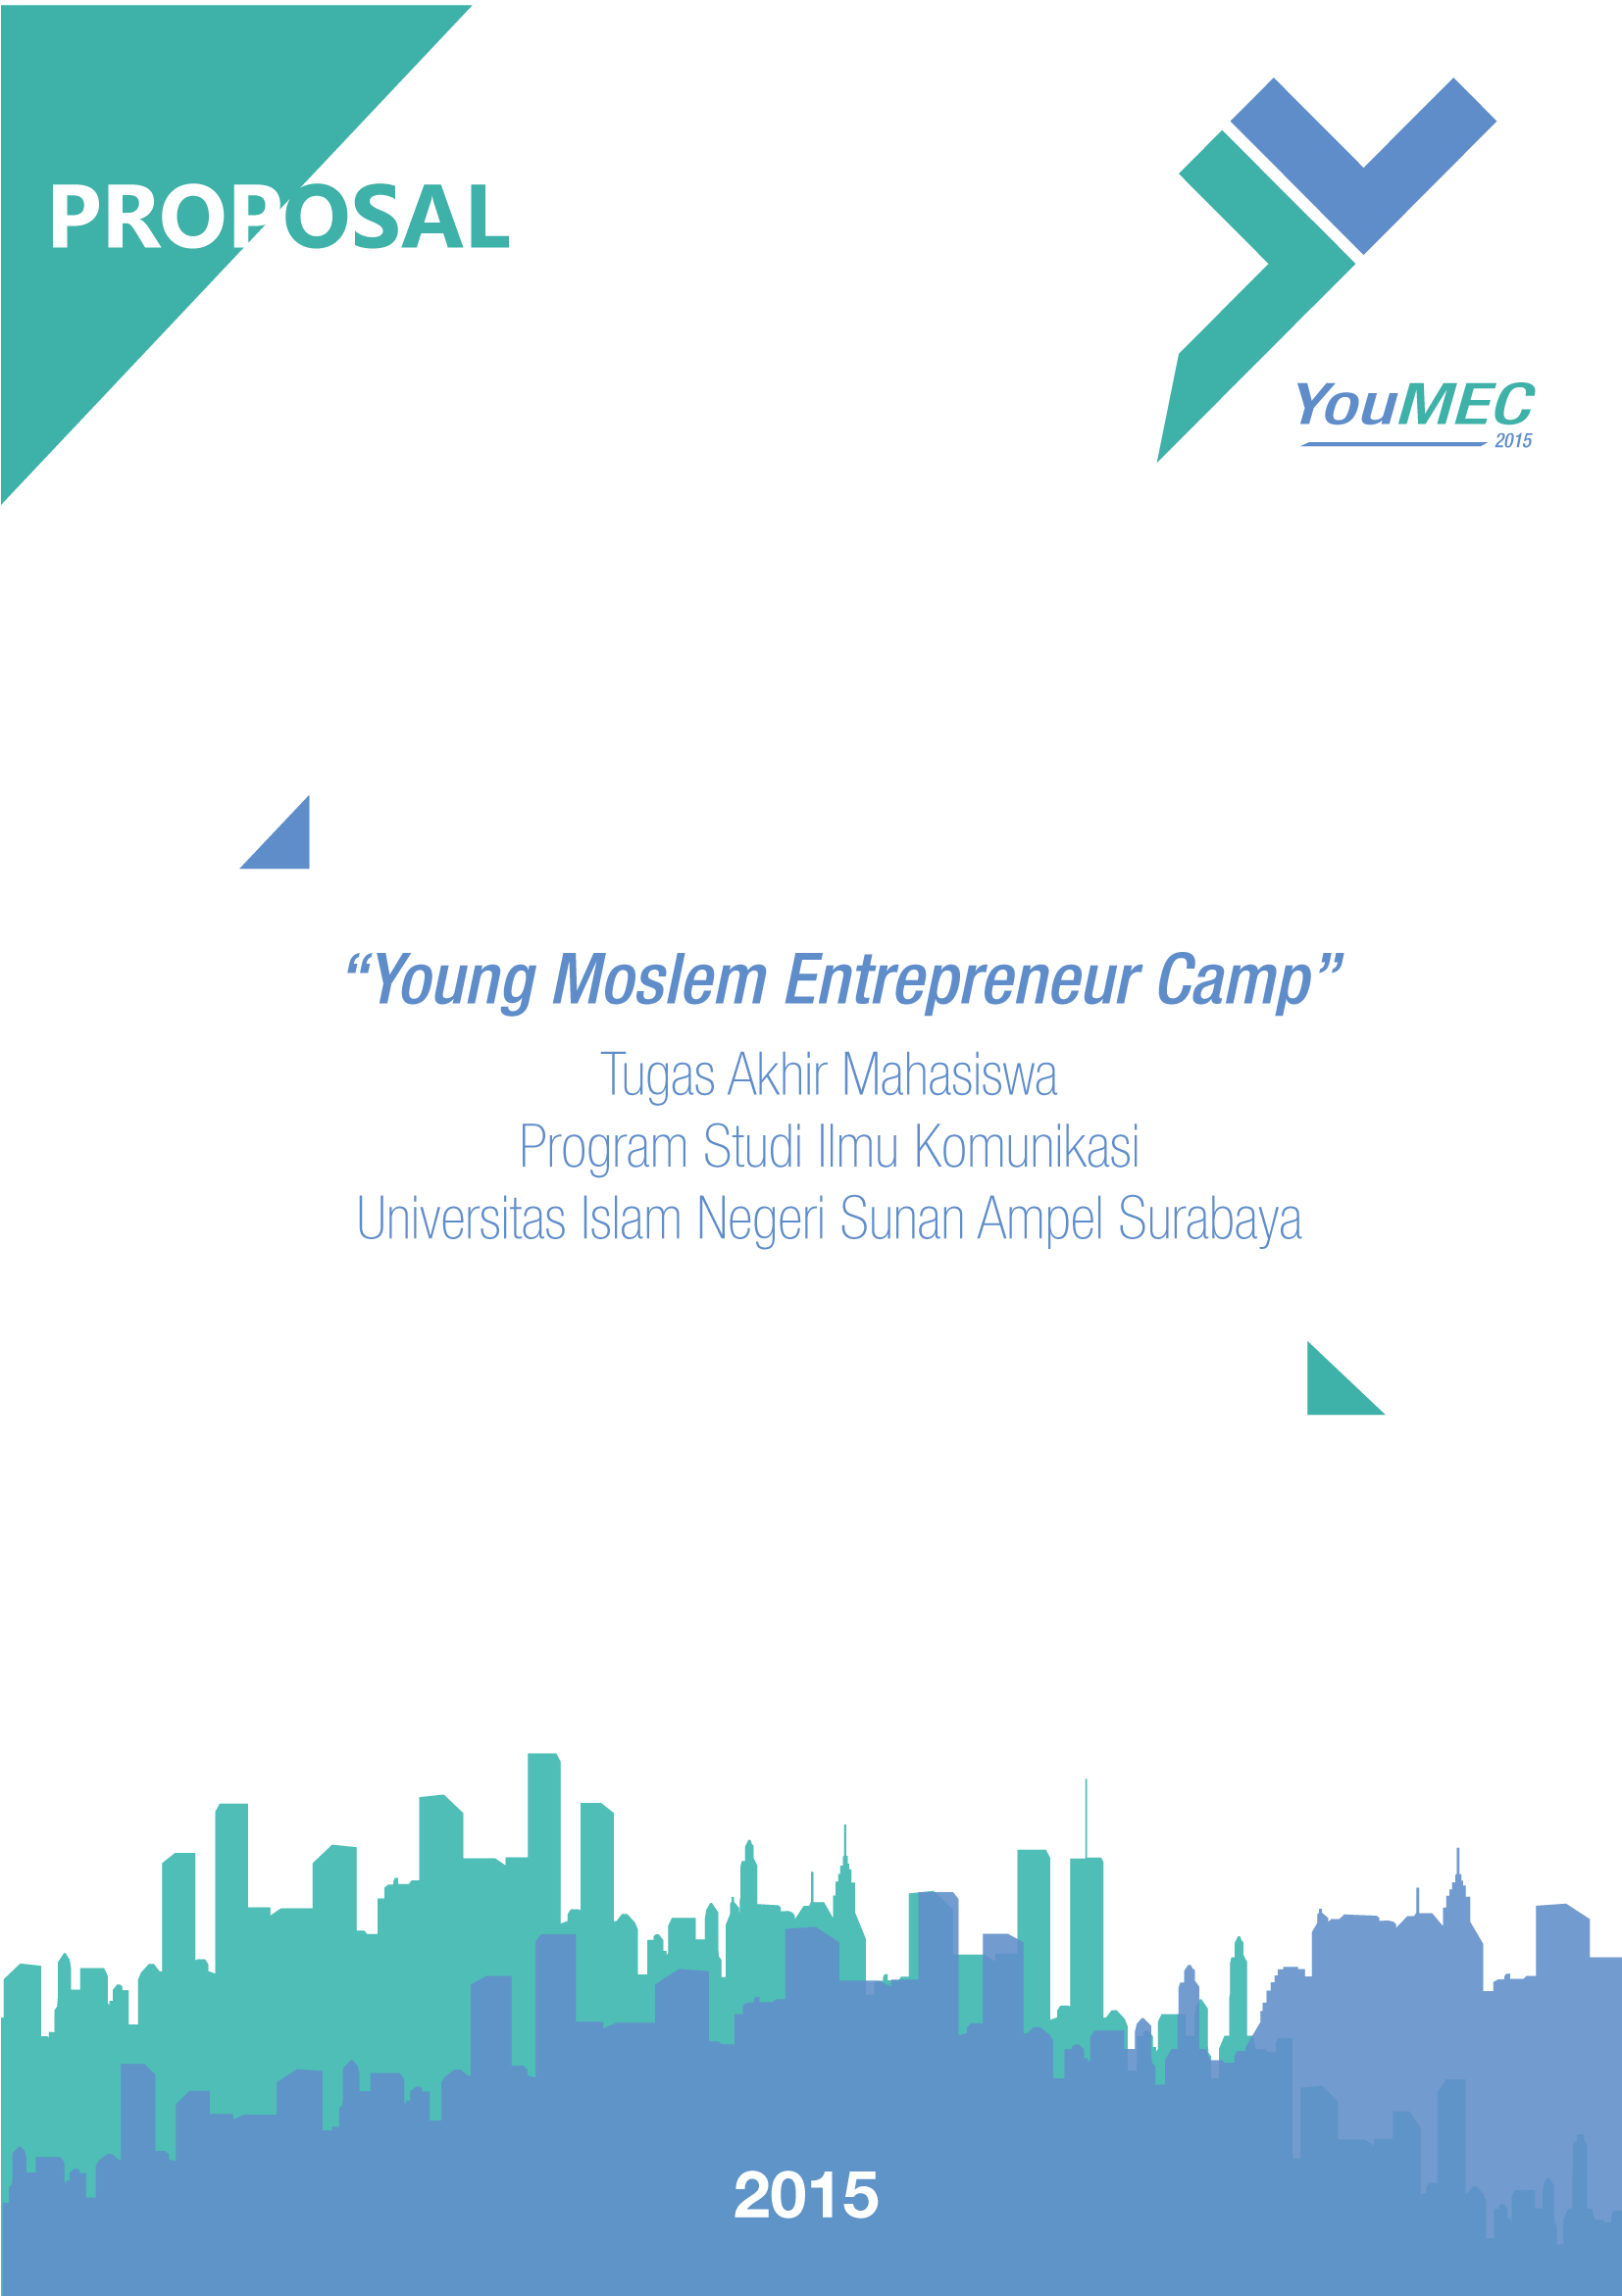 Desain Cover Proposal Event Youmec Young Moslem Entrepreneur Camp